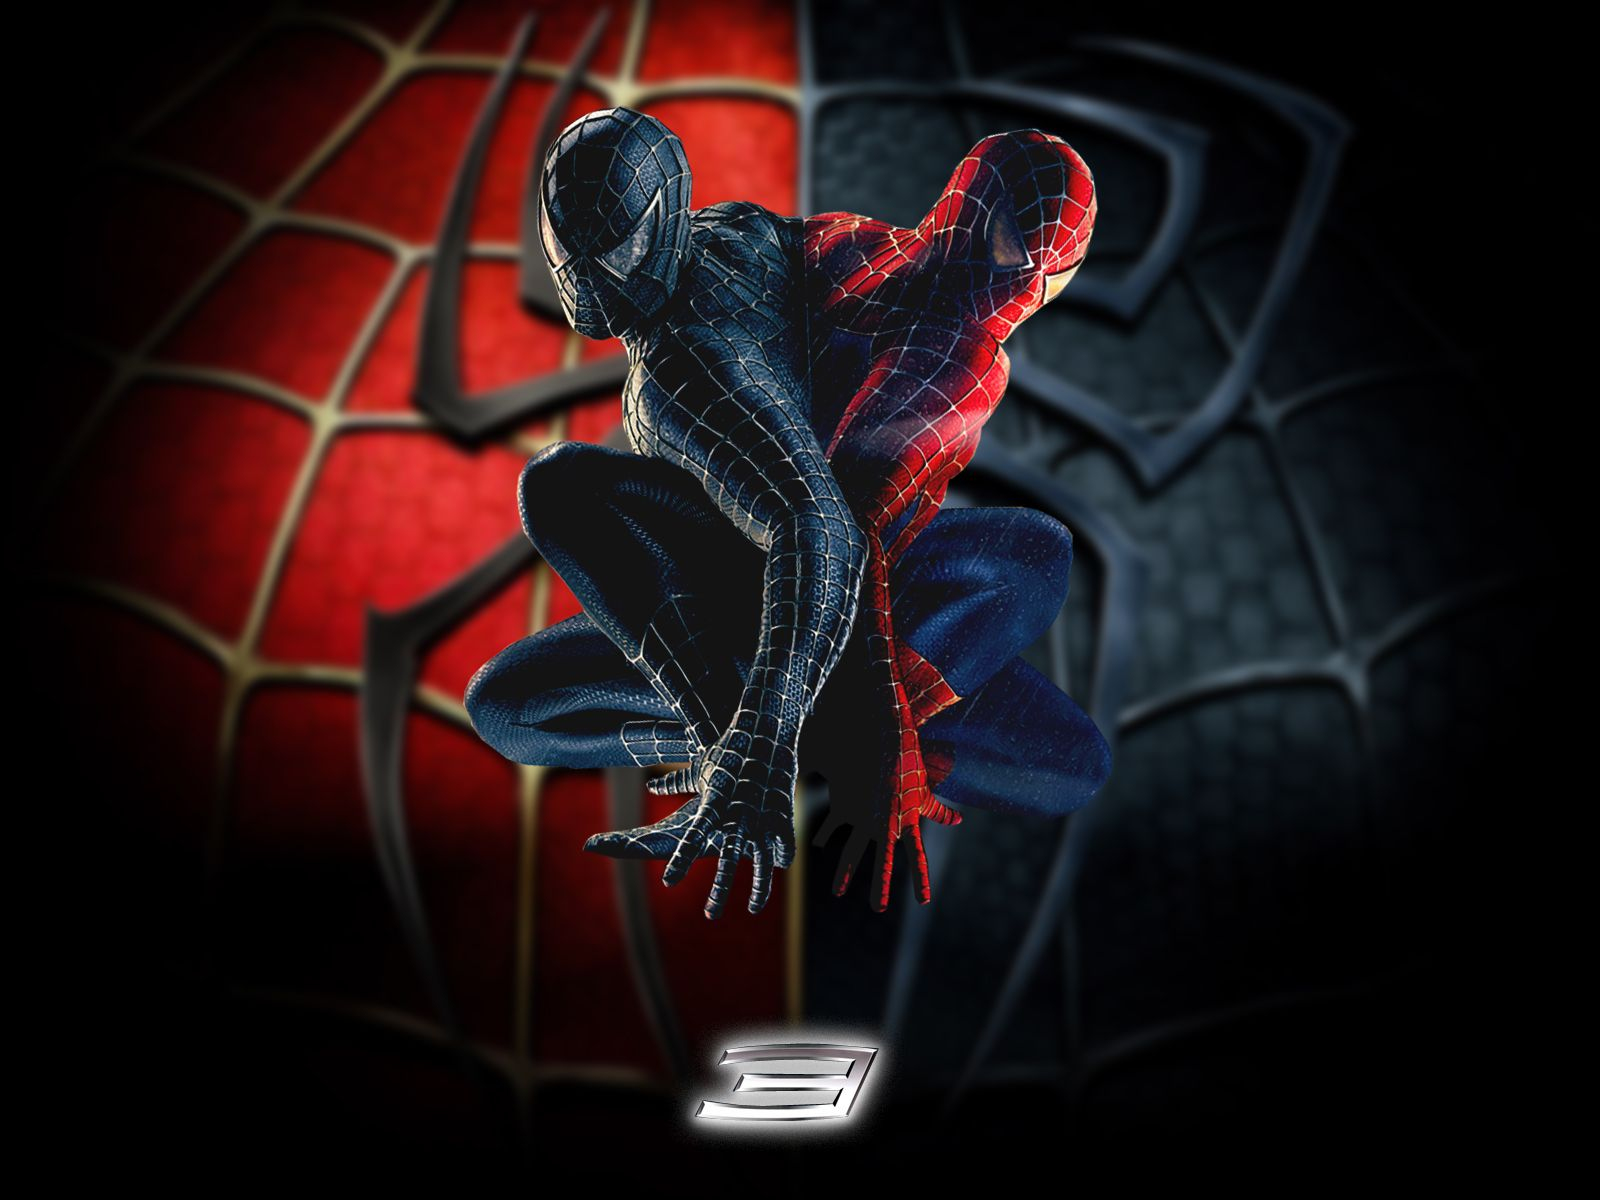 Oct 01, · The Symbiote Costume, also known as the Black Suit by fans, is the first brand new change of costume donned by Peter Parker in the first published Amazing Spider-Man #, and chronologically donned in Secret Wars #mediacrucialxa.cf Designer(s): None (symbiote), Felicia Hardy (cloth).